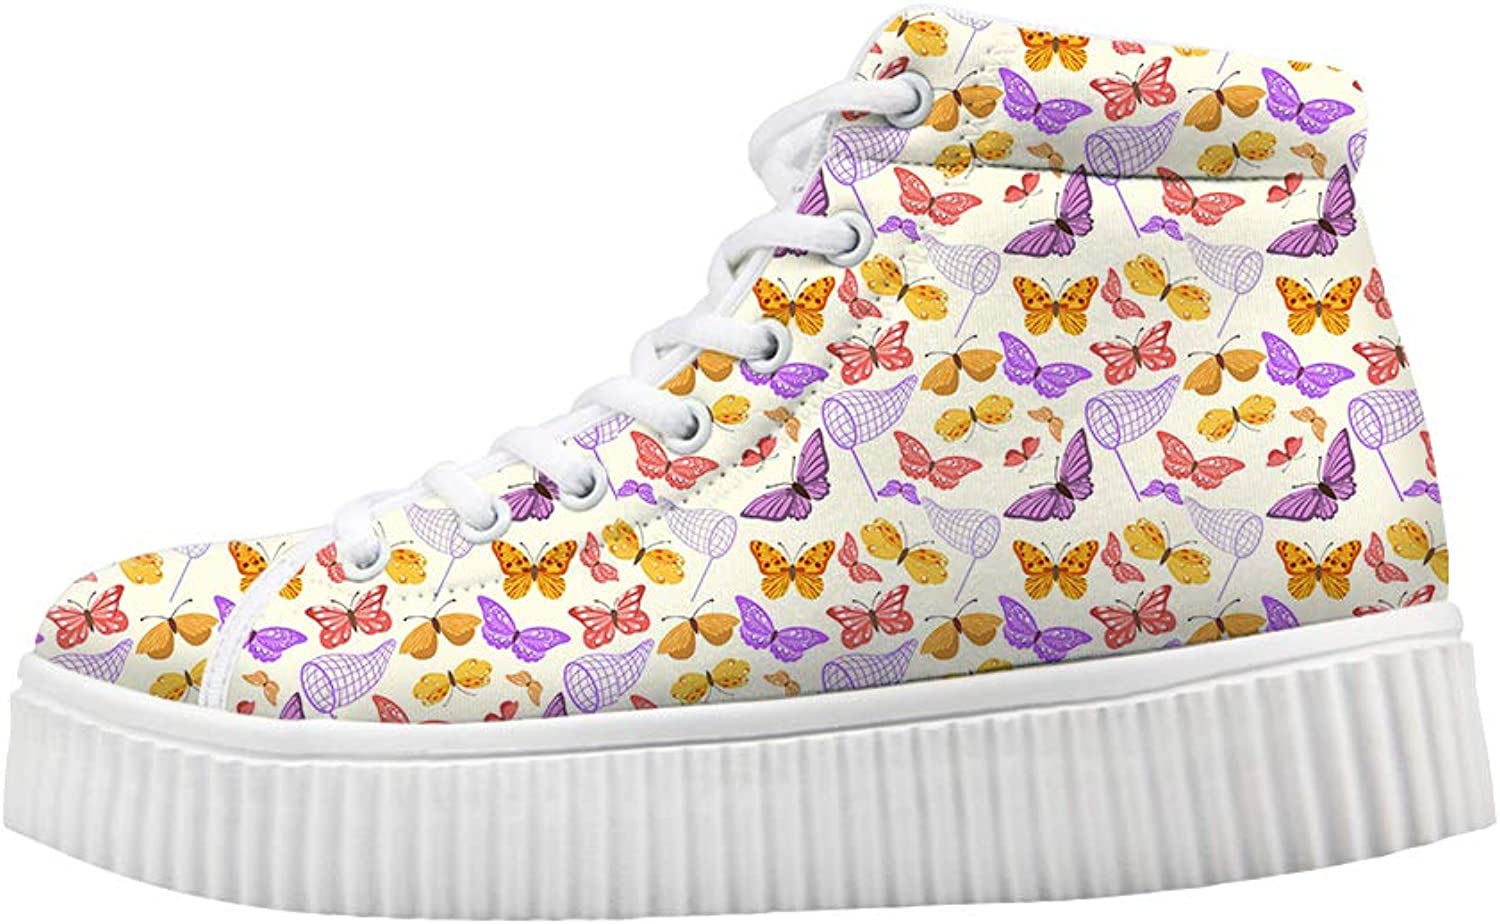 Owaheson Platform Lace up Sneaker Casual Chunky Walking shoes Women Net Pocket colorful Butterflies Capture